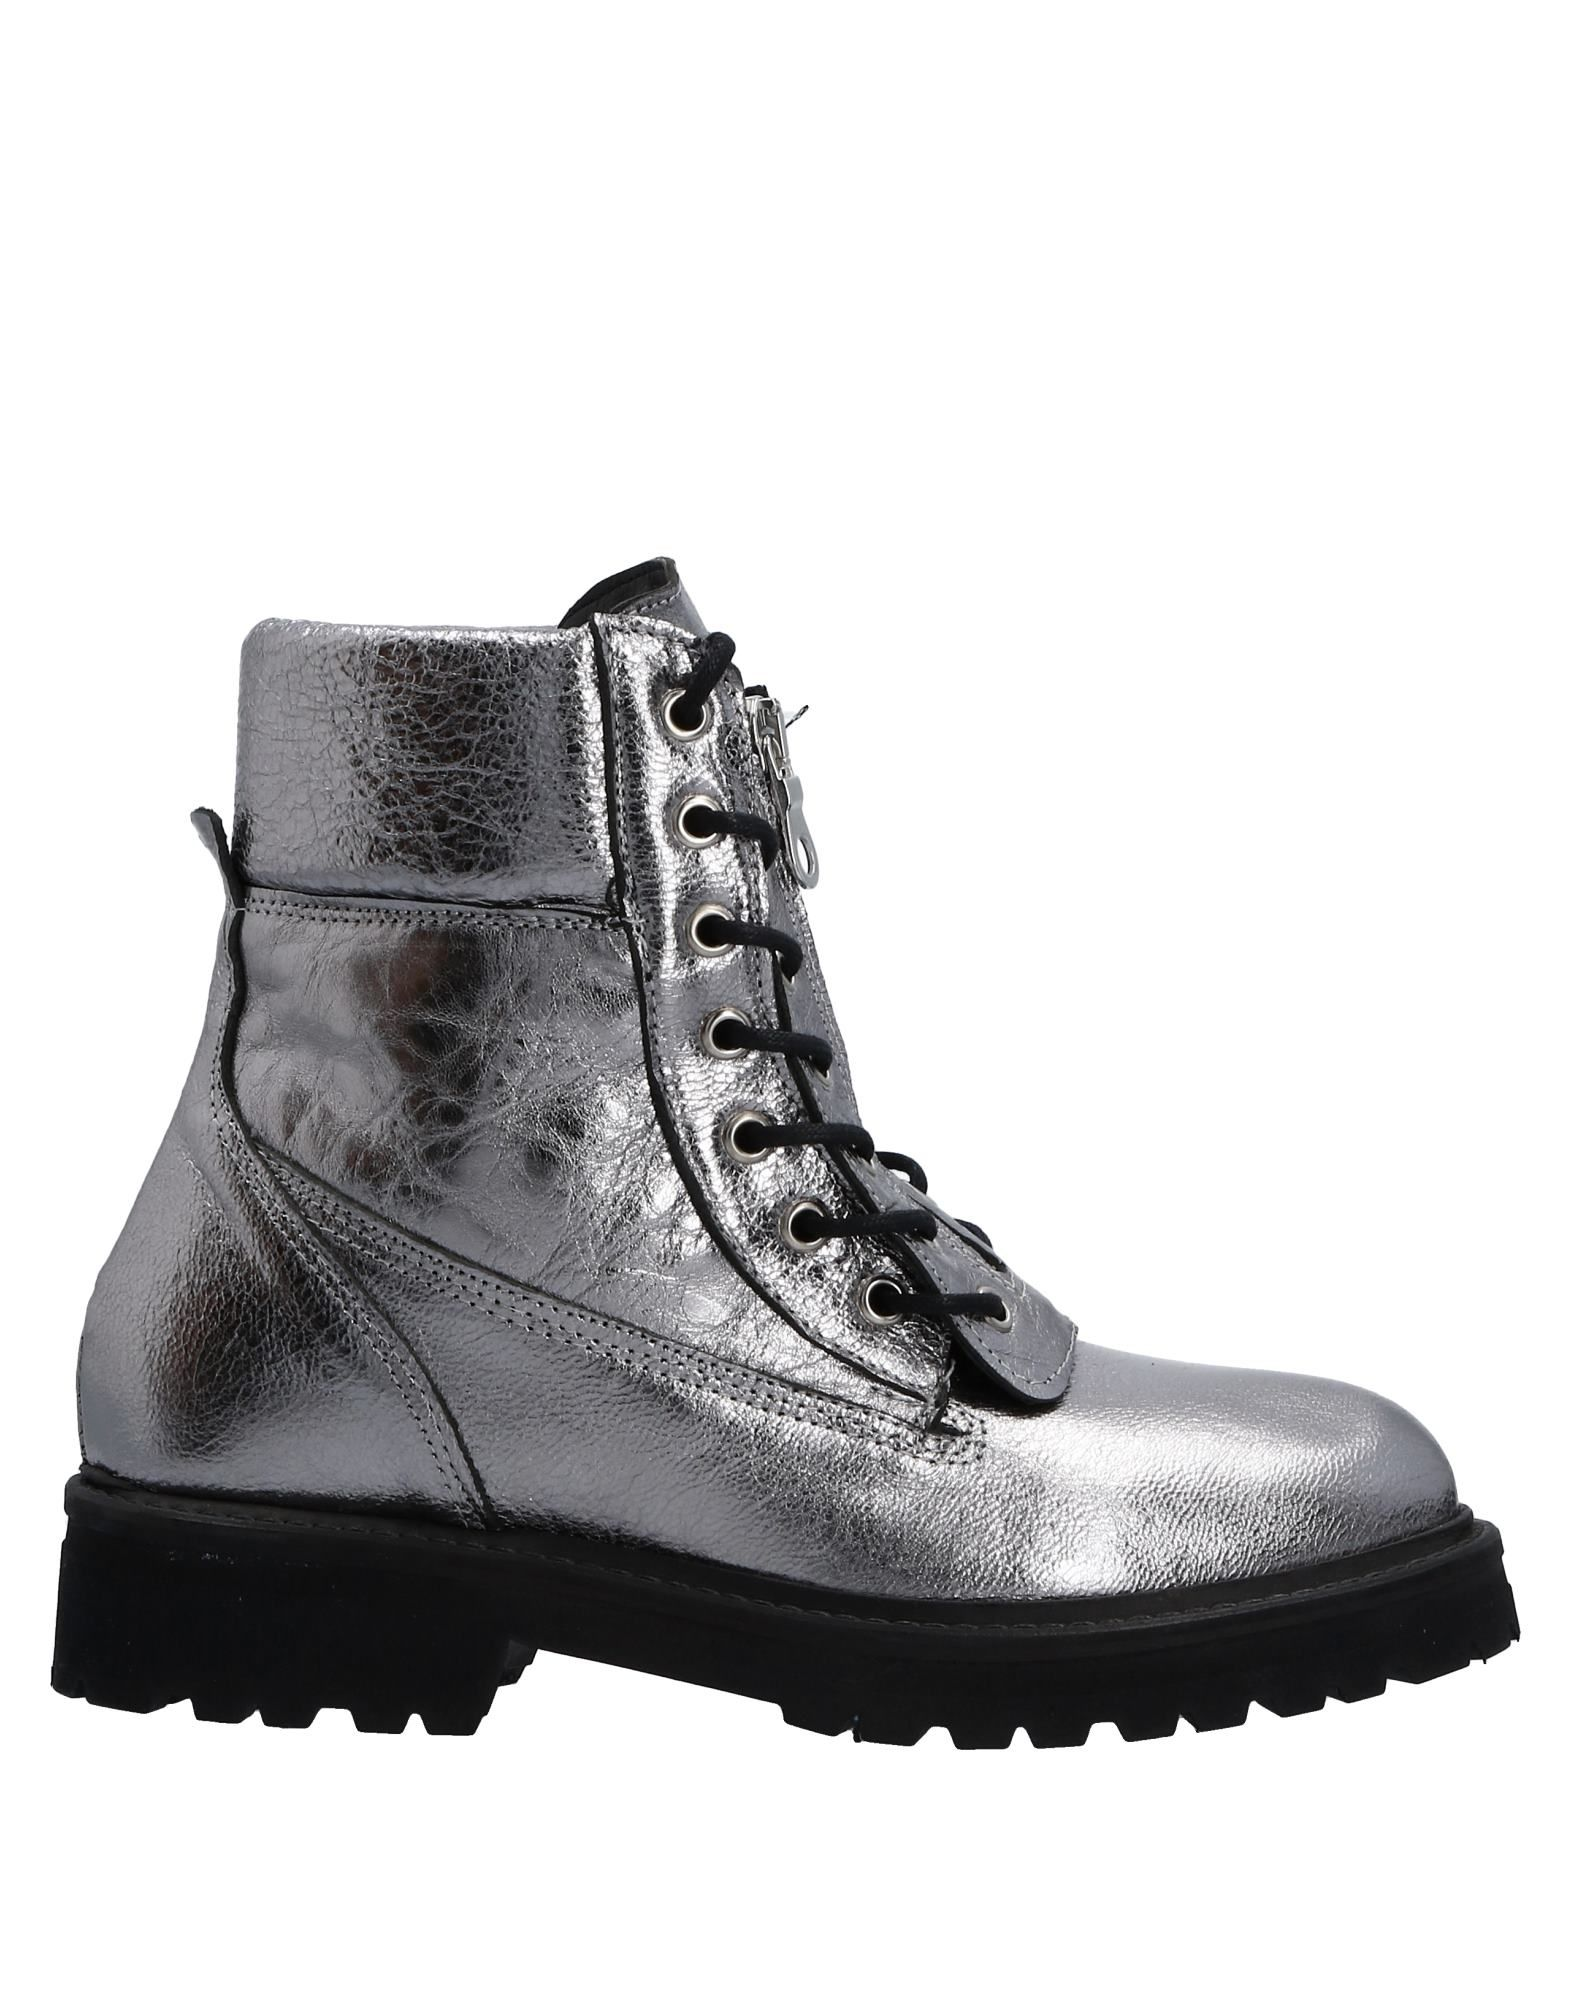 J.Born Ankle Boot Boots - Women J.Born Ankle Boots Boot online on  United Kingdom - 11523232WT 168962